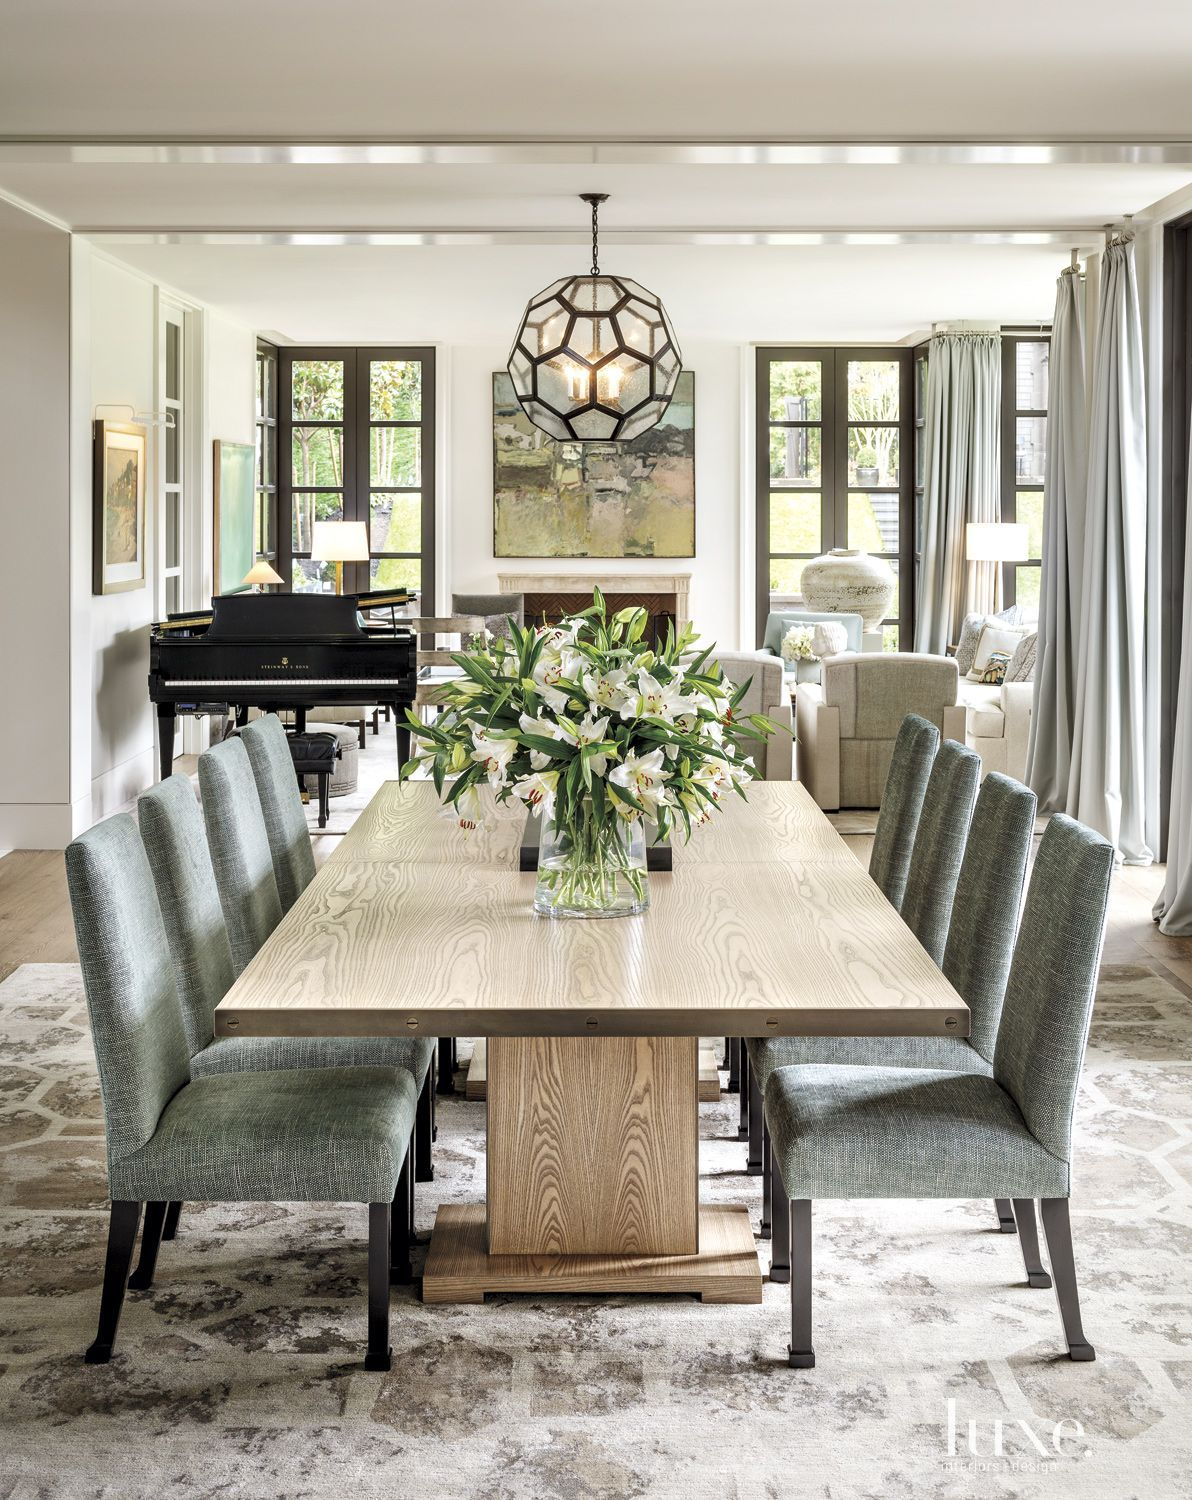 Designer Dining Room Furniture: A Bright Contemporary Broadmoor Dwelling